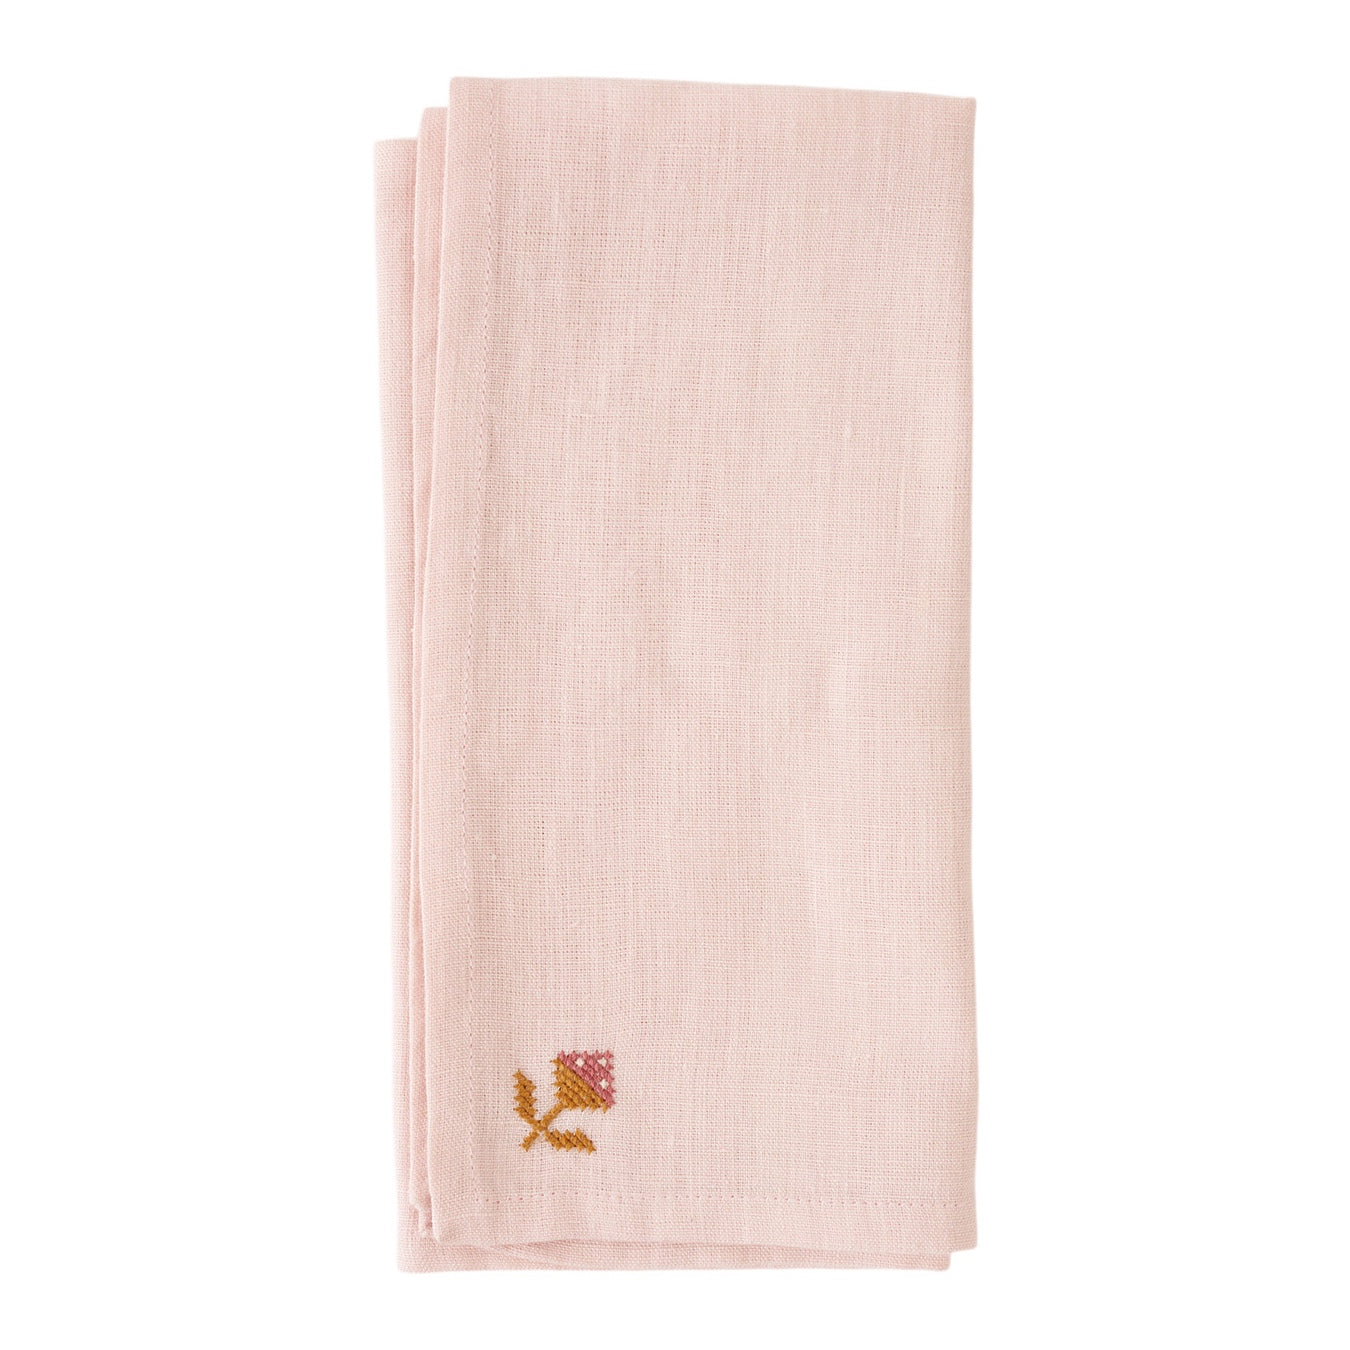 Rose Bud Napkin - Light Pink